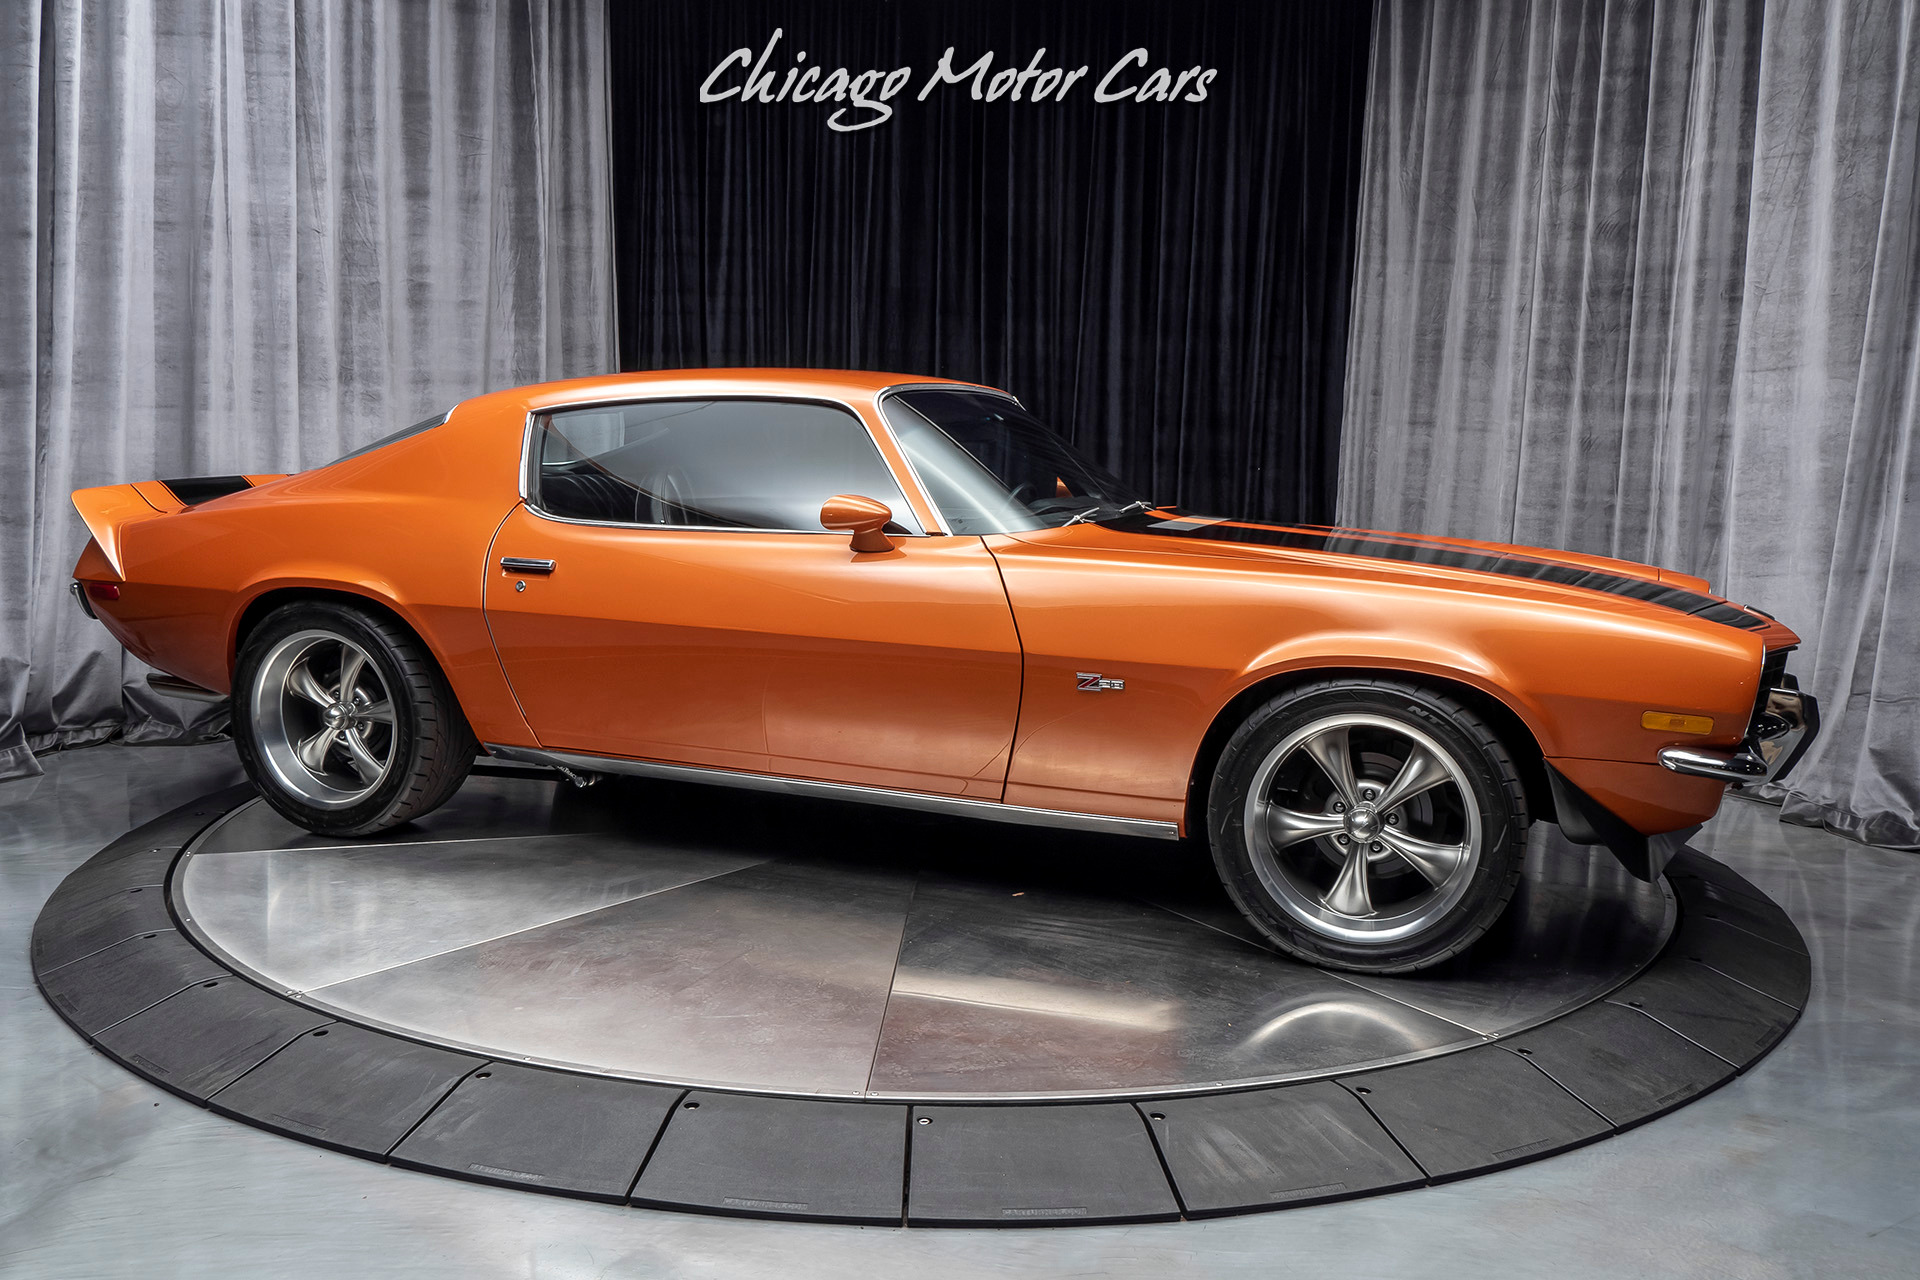 Used-1973-Chevrolet-Camaro-Z28-Coupe-EXCELLENT-CONDITION